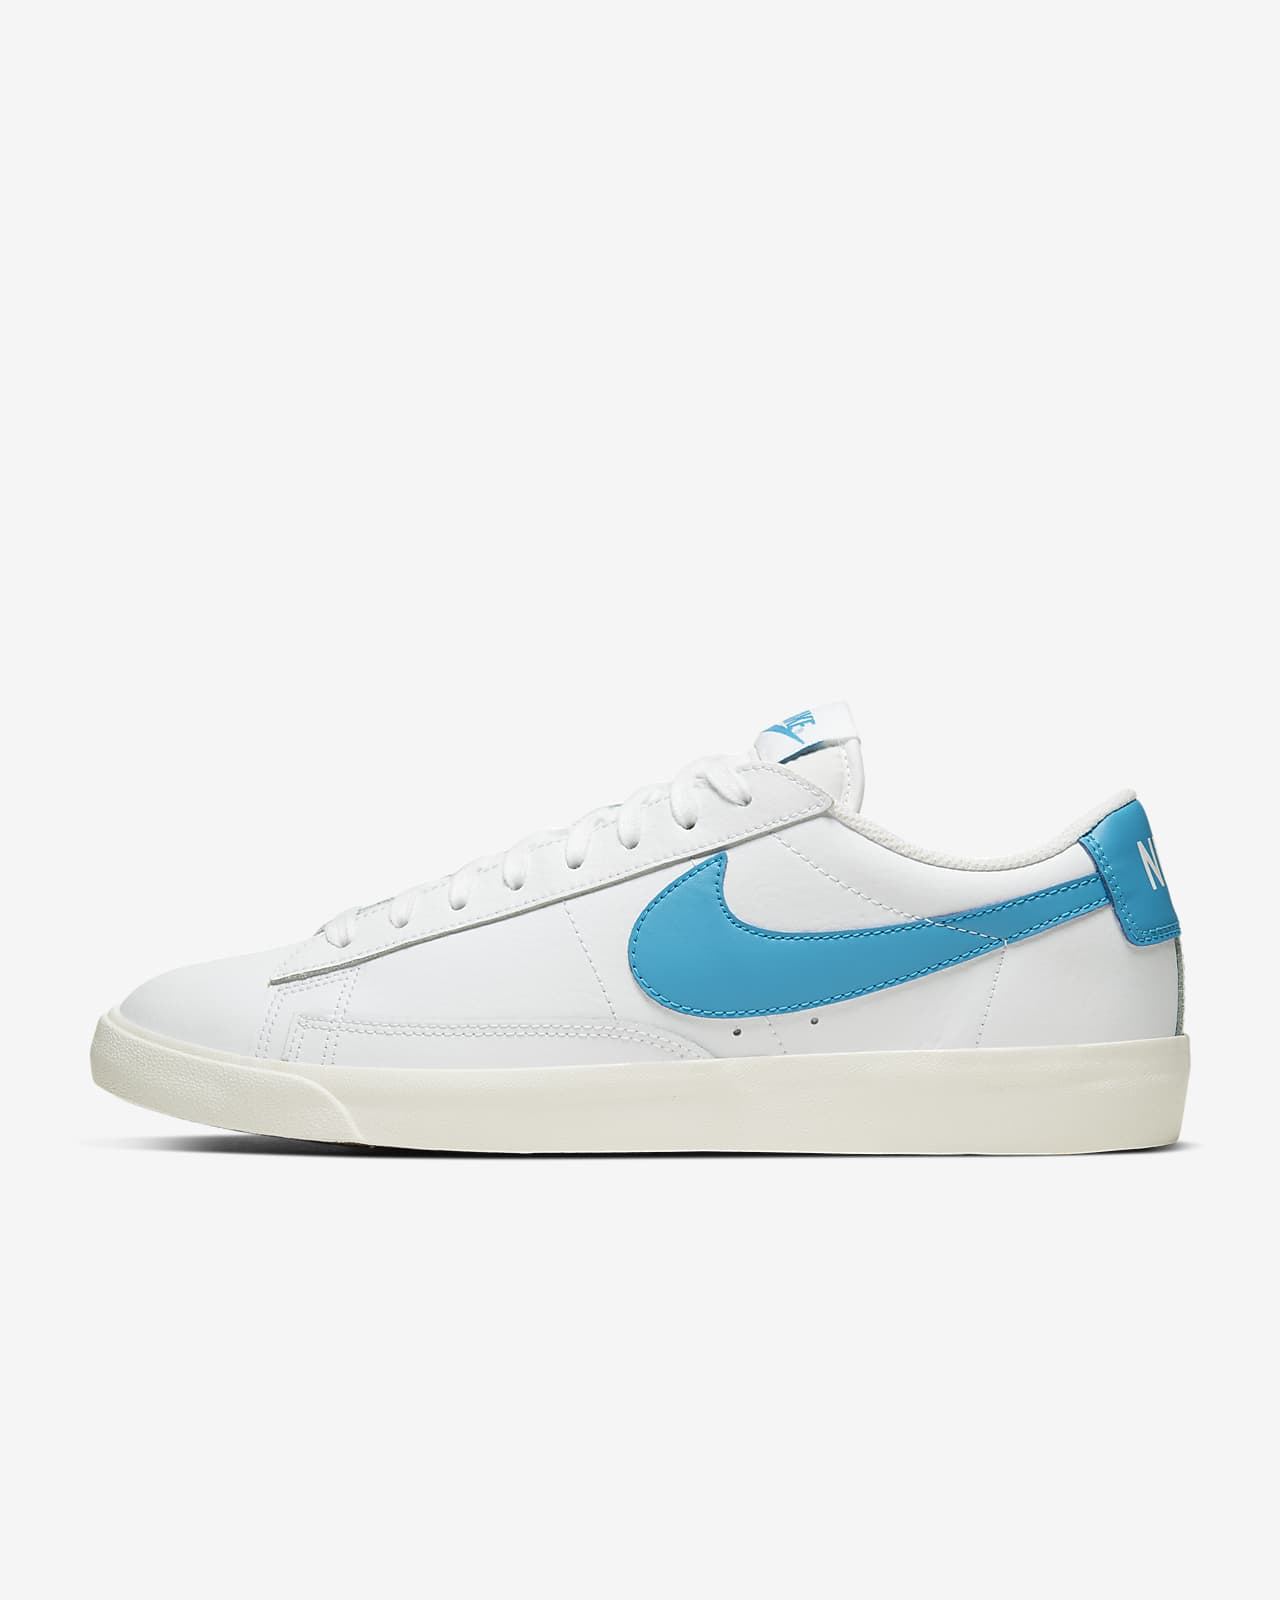 Chaussure Nike Blazer Low Leather pour Homme